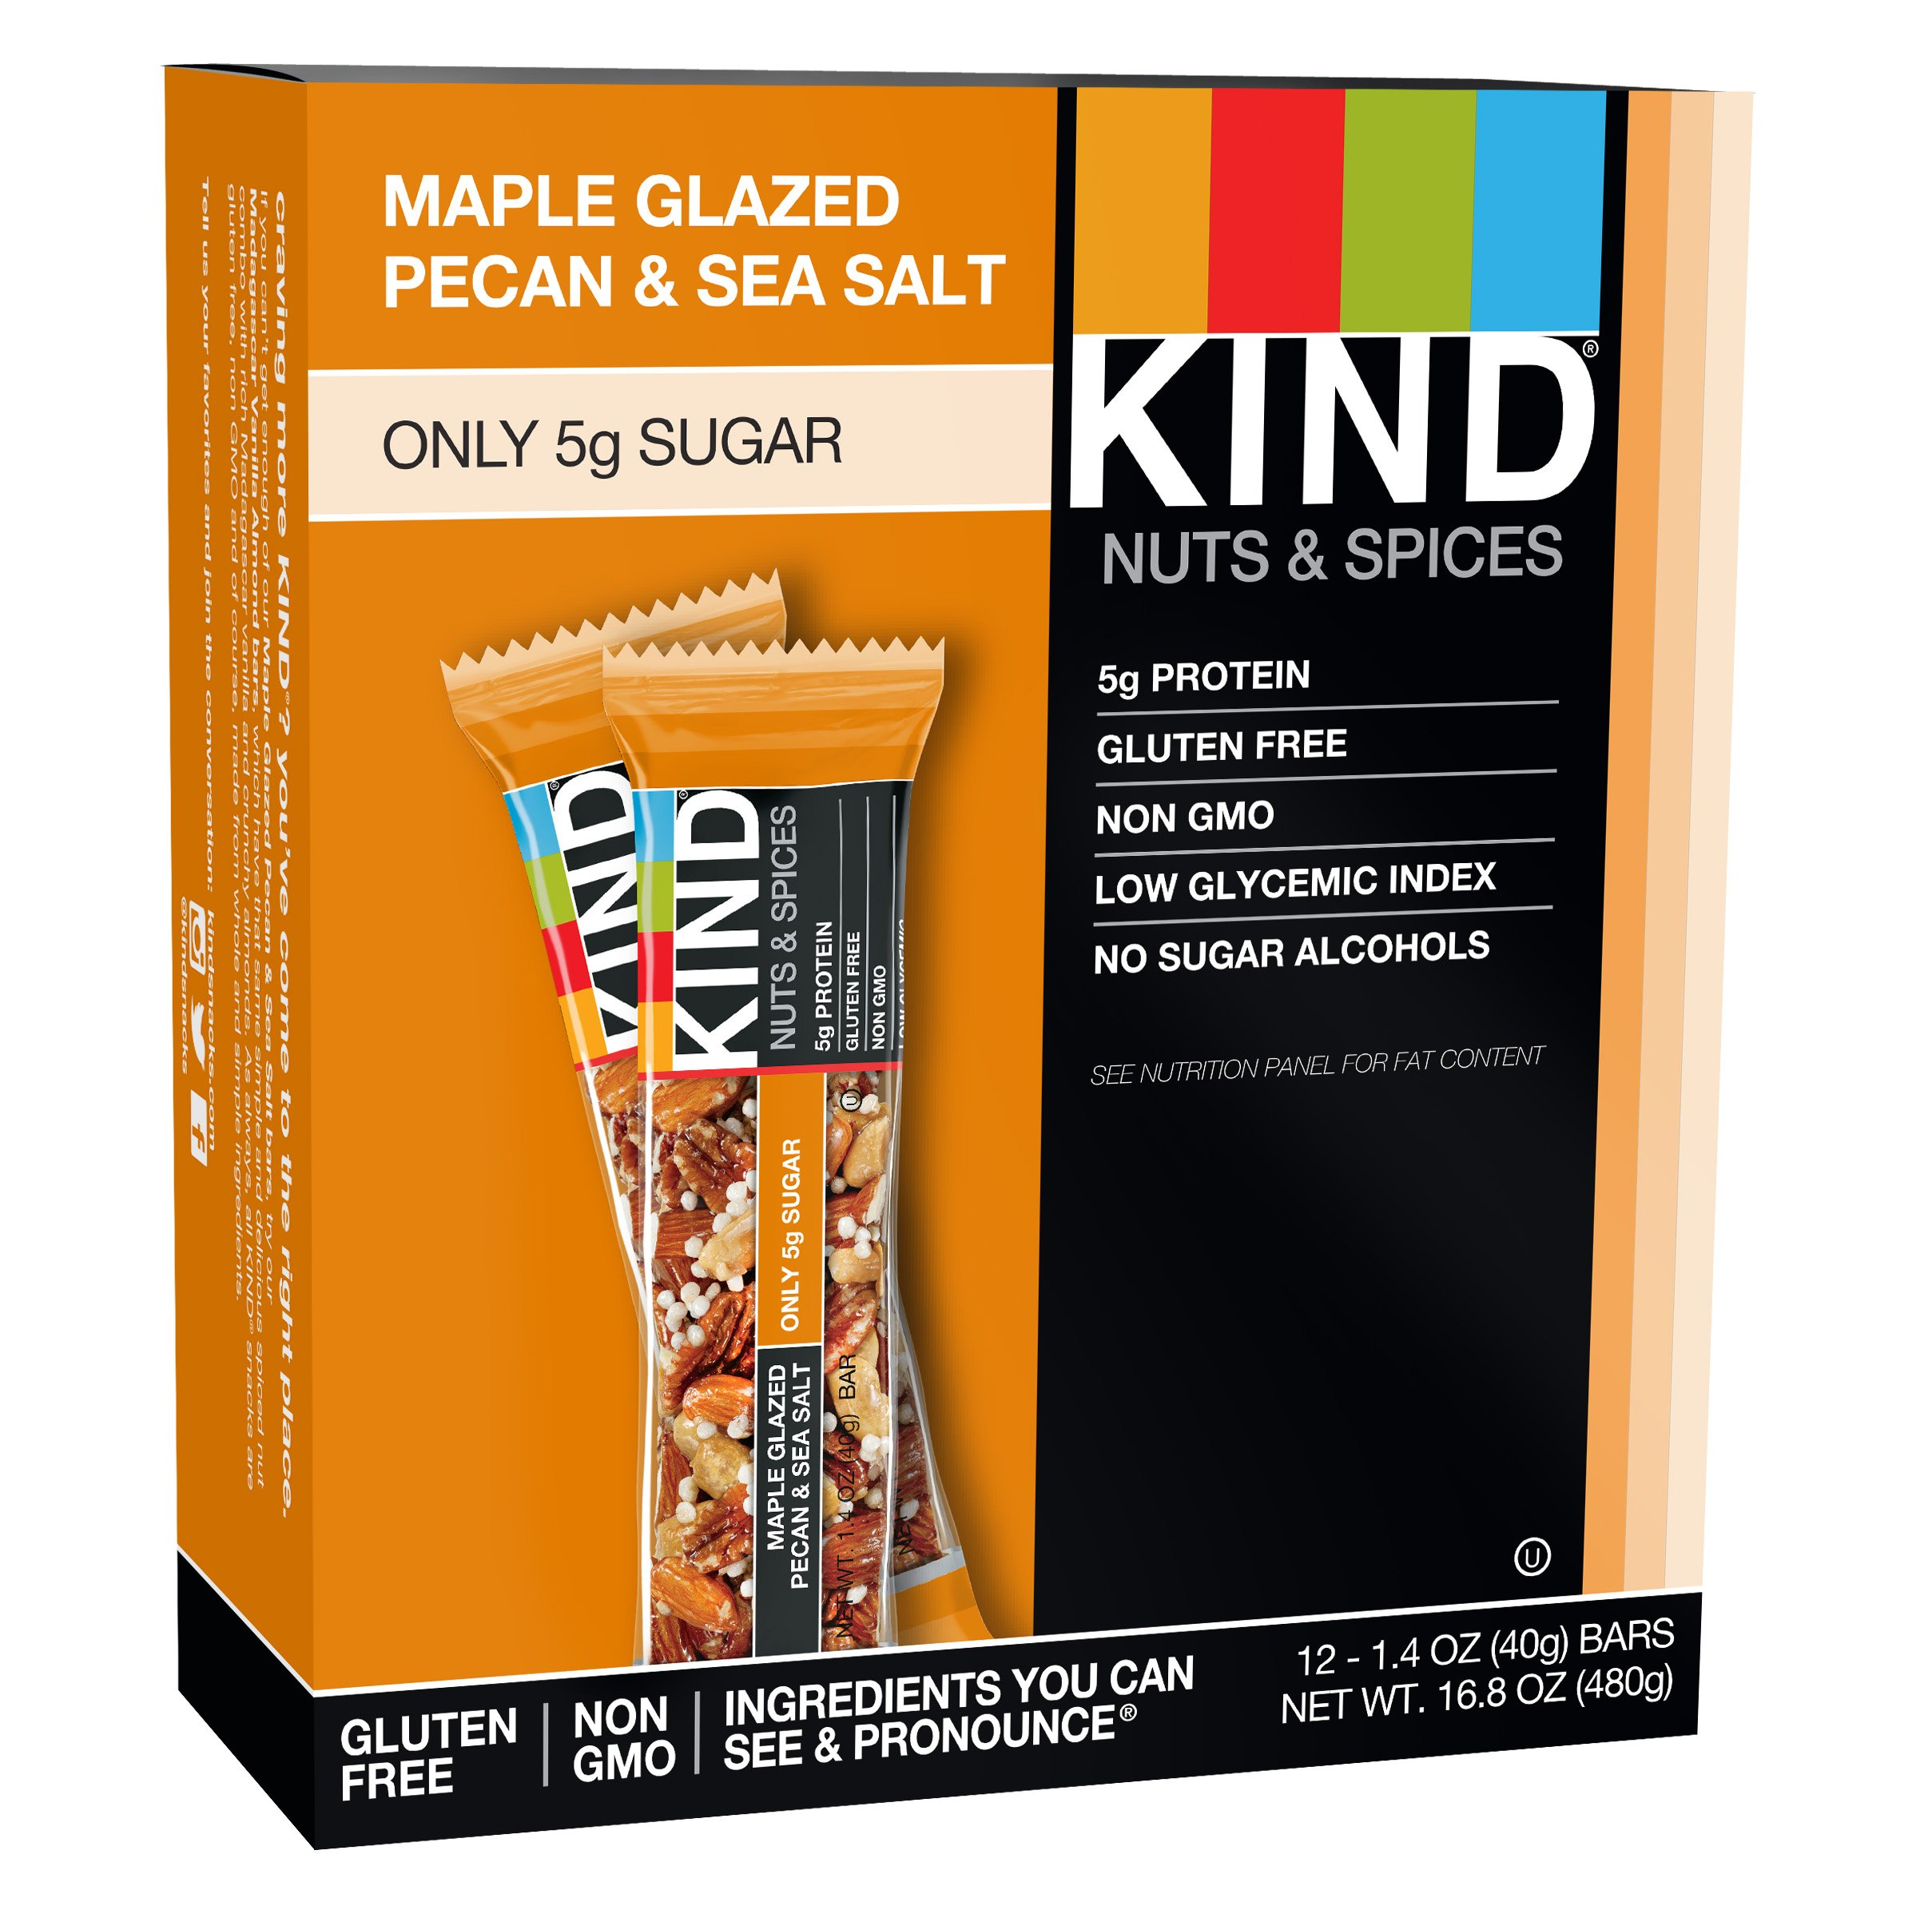 KIND Nuts & Spices, Maple Glazed Pecan & Sea Salt, 1.4 Ounce 12-Count Bars